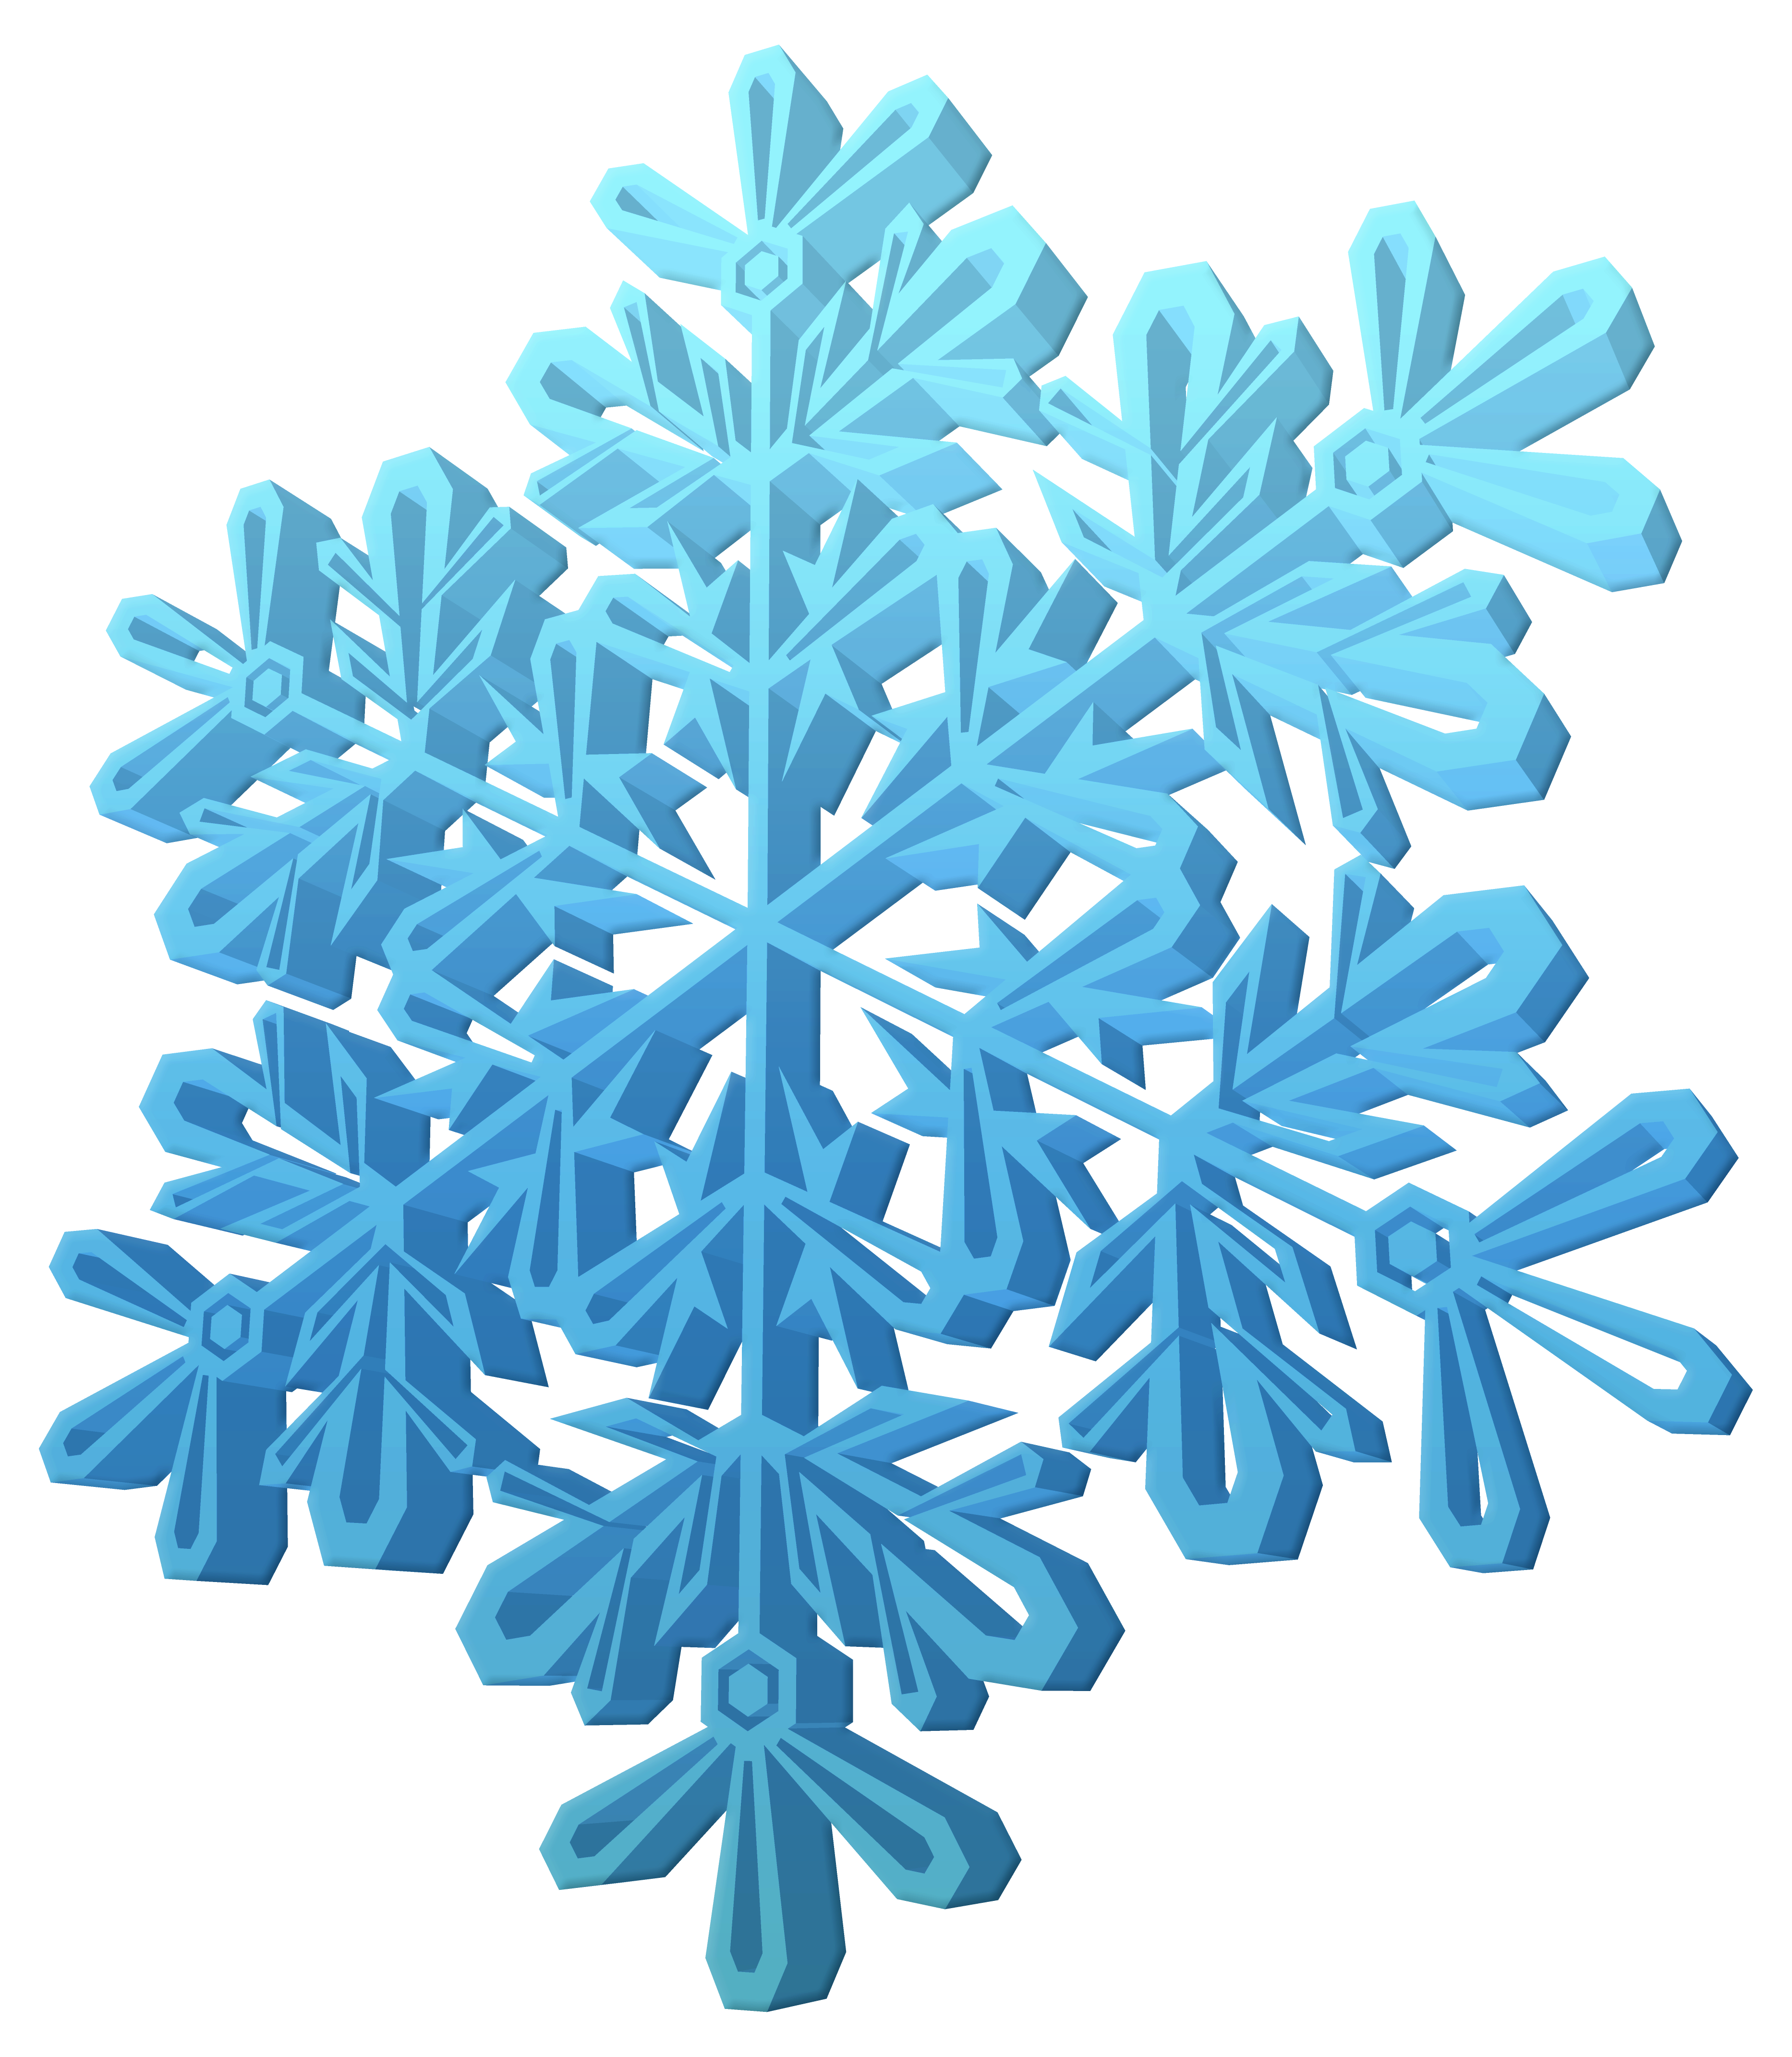 d snowflake clipart. Snowflakes border png